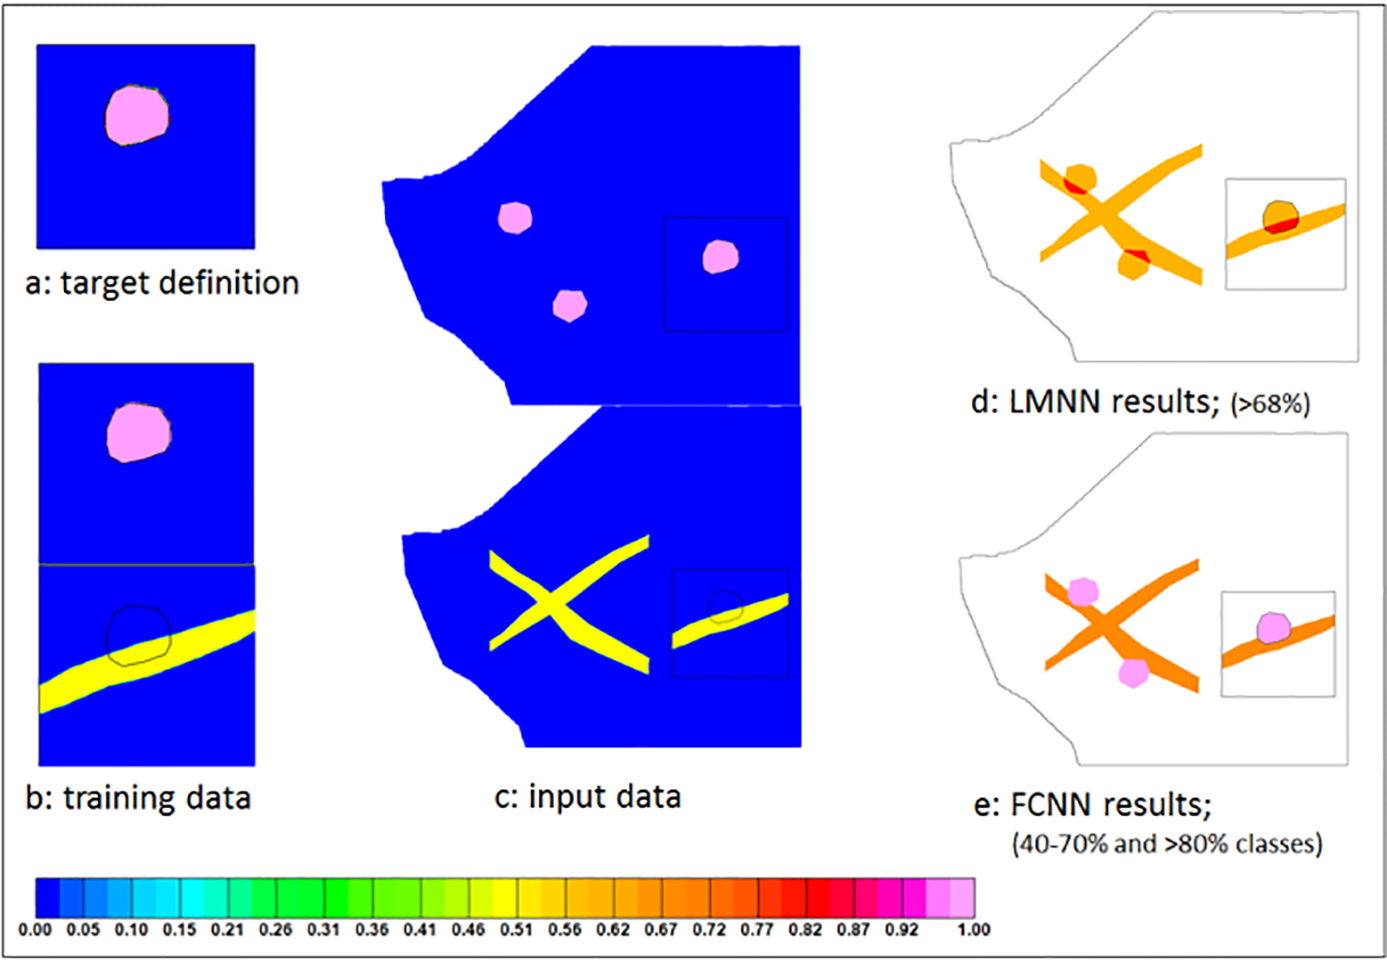 Figure 4: Synthetic data LMNN and FCNN test results.